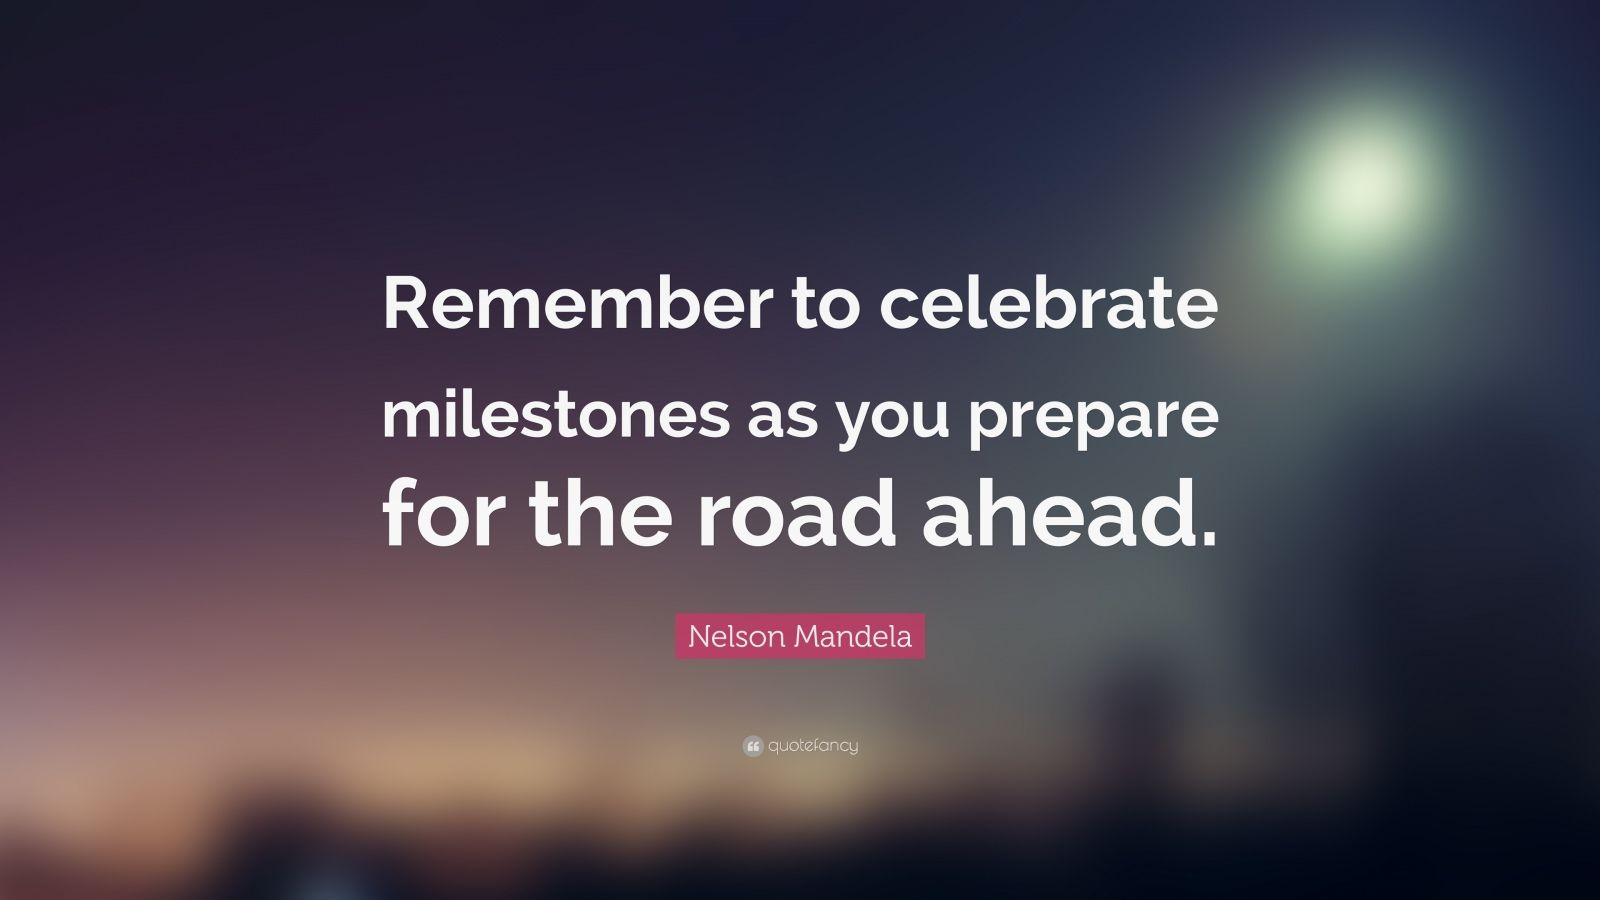 Elon Musk Quotes Wallpapers Nelson Mandela Quote Remember To Celebrate Milestones As